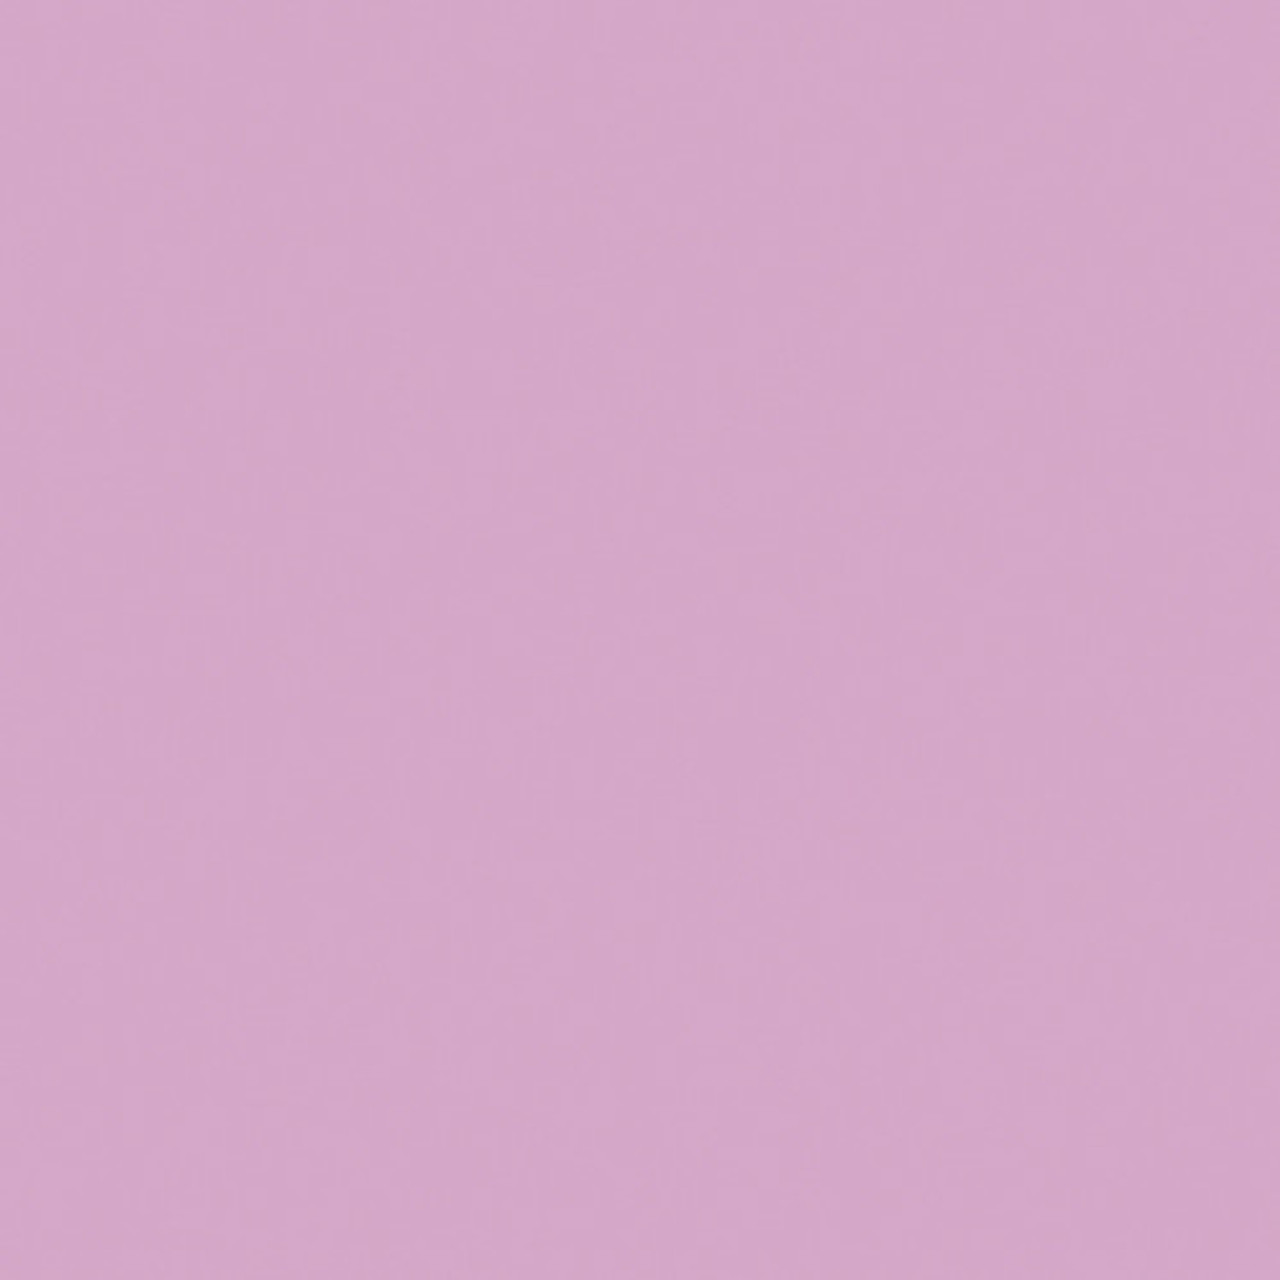 #0037 Rosco Gels Roscolux Pale Rose Pink, 20x24""